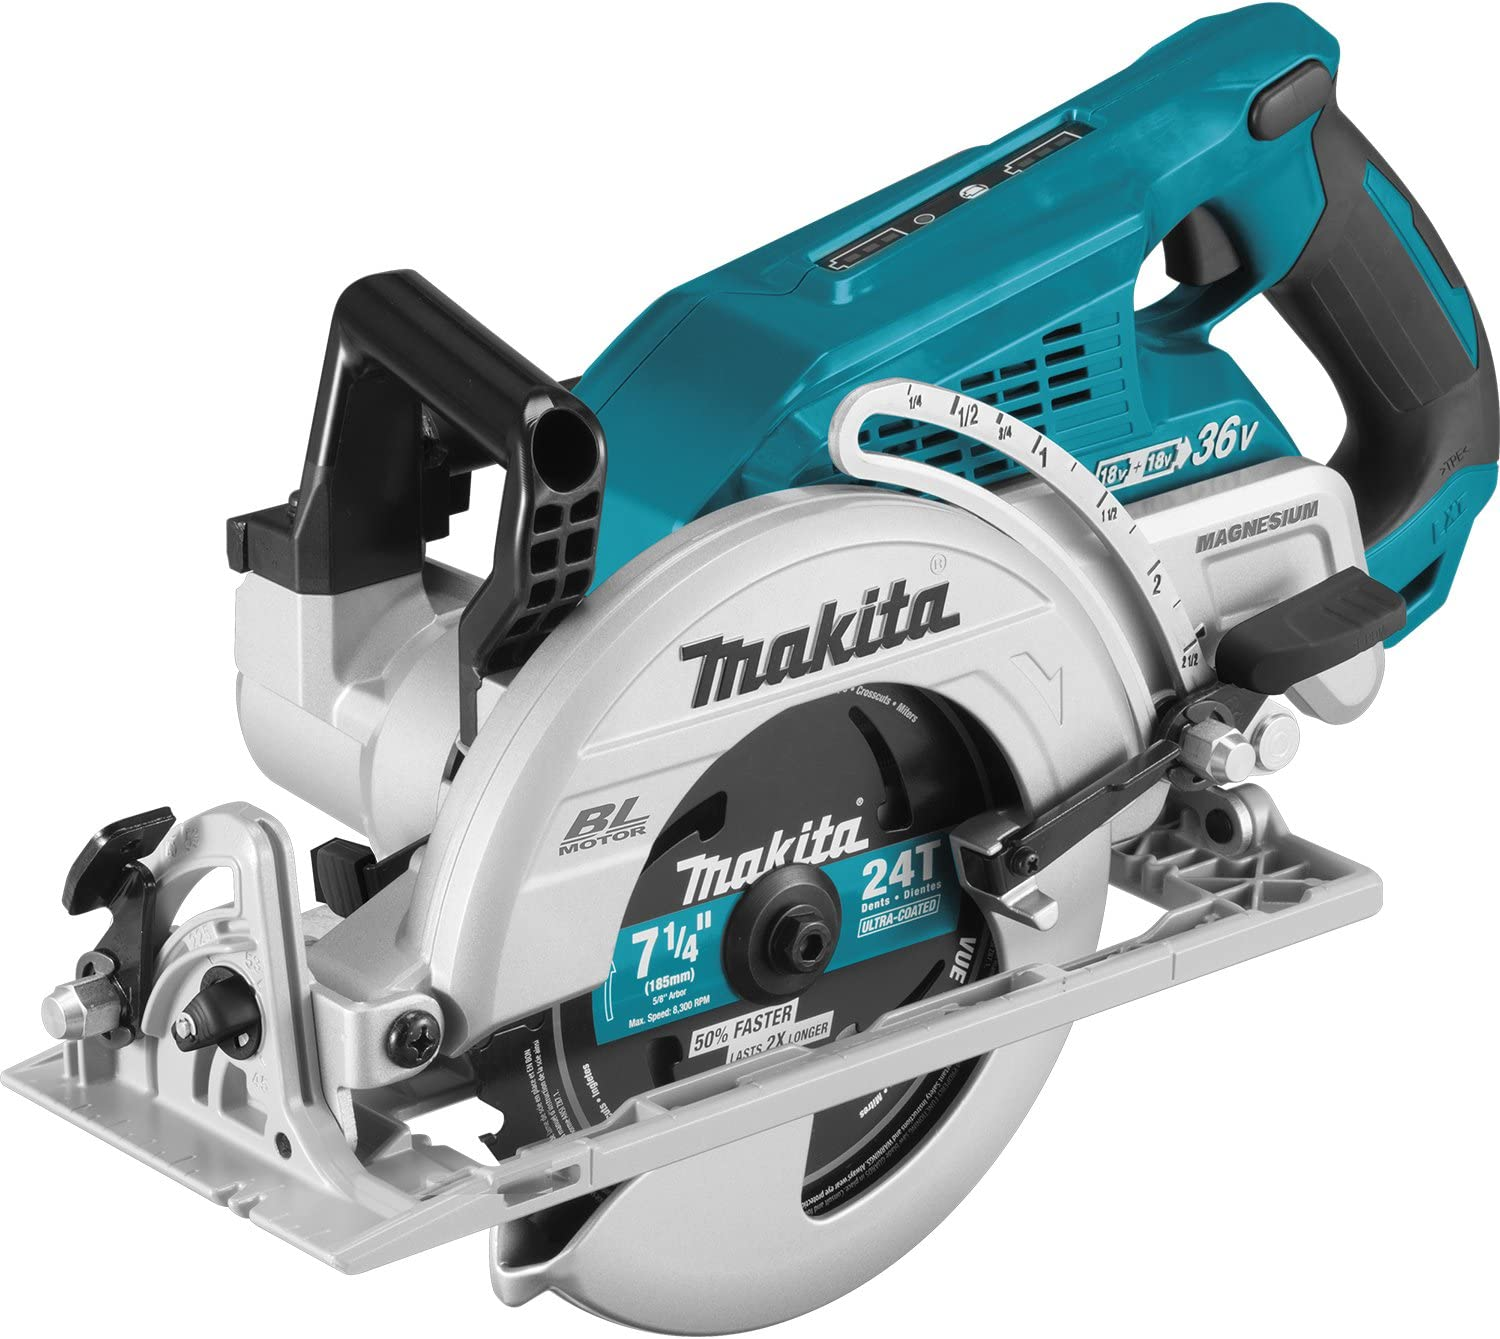 Makita XSR01Z 18V X2 LXT Lithium-Ion 36V Brushless Cordless Rear Handle 7-1 4 Circular Saw, Tool Only